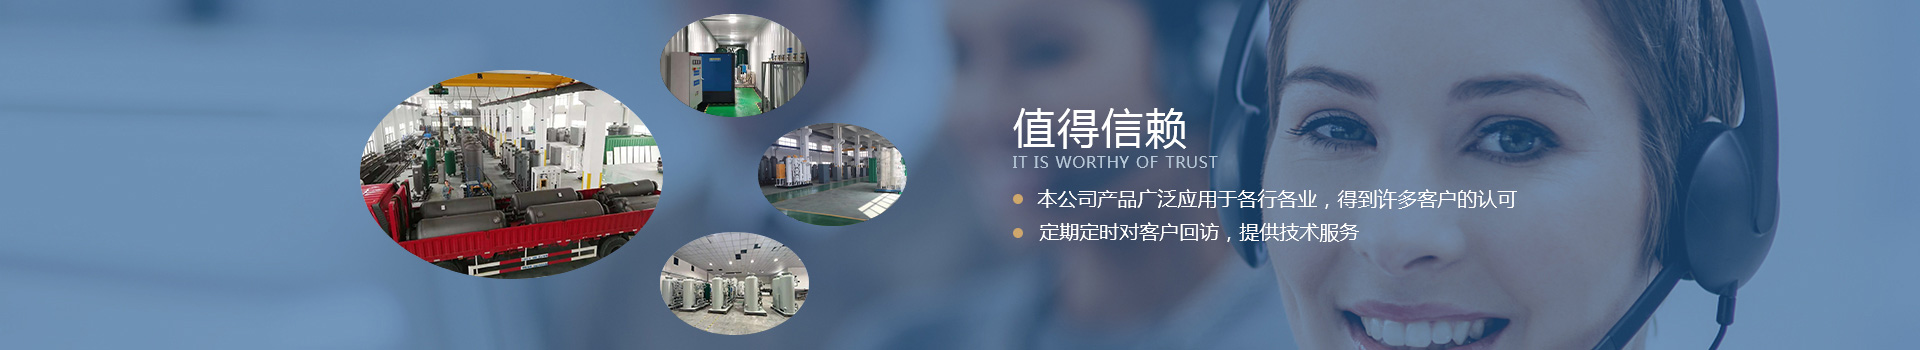 Qilee environmental protection VOCs organic waste gas treatment and purification technology and equipment